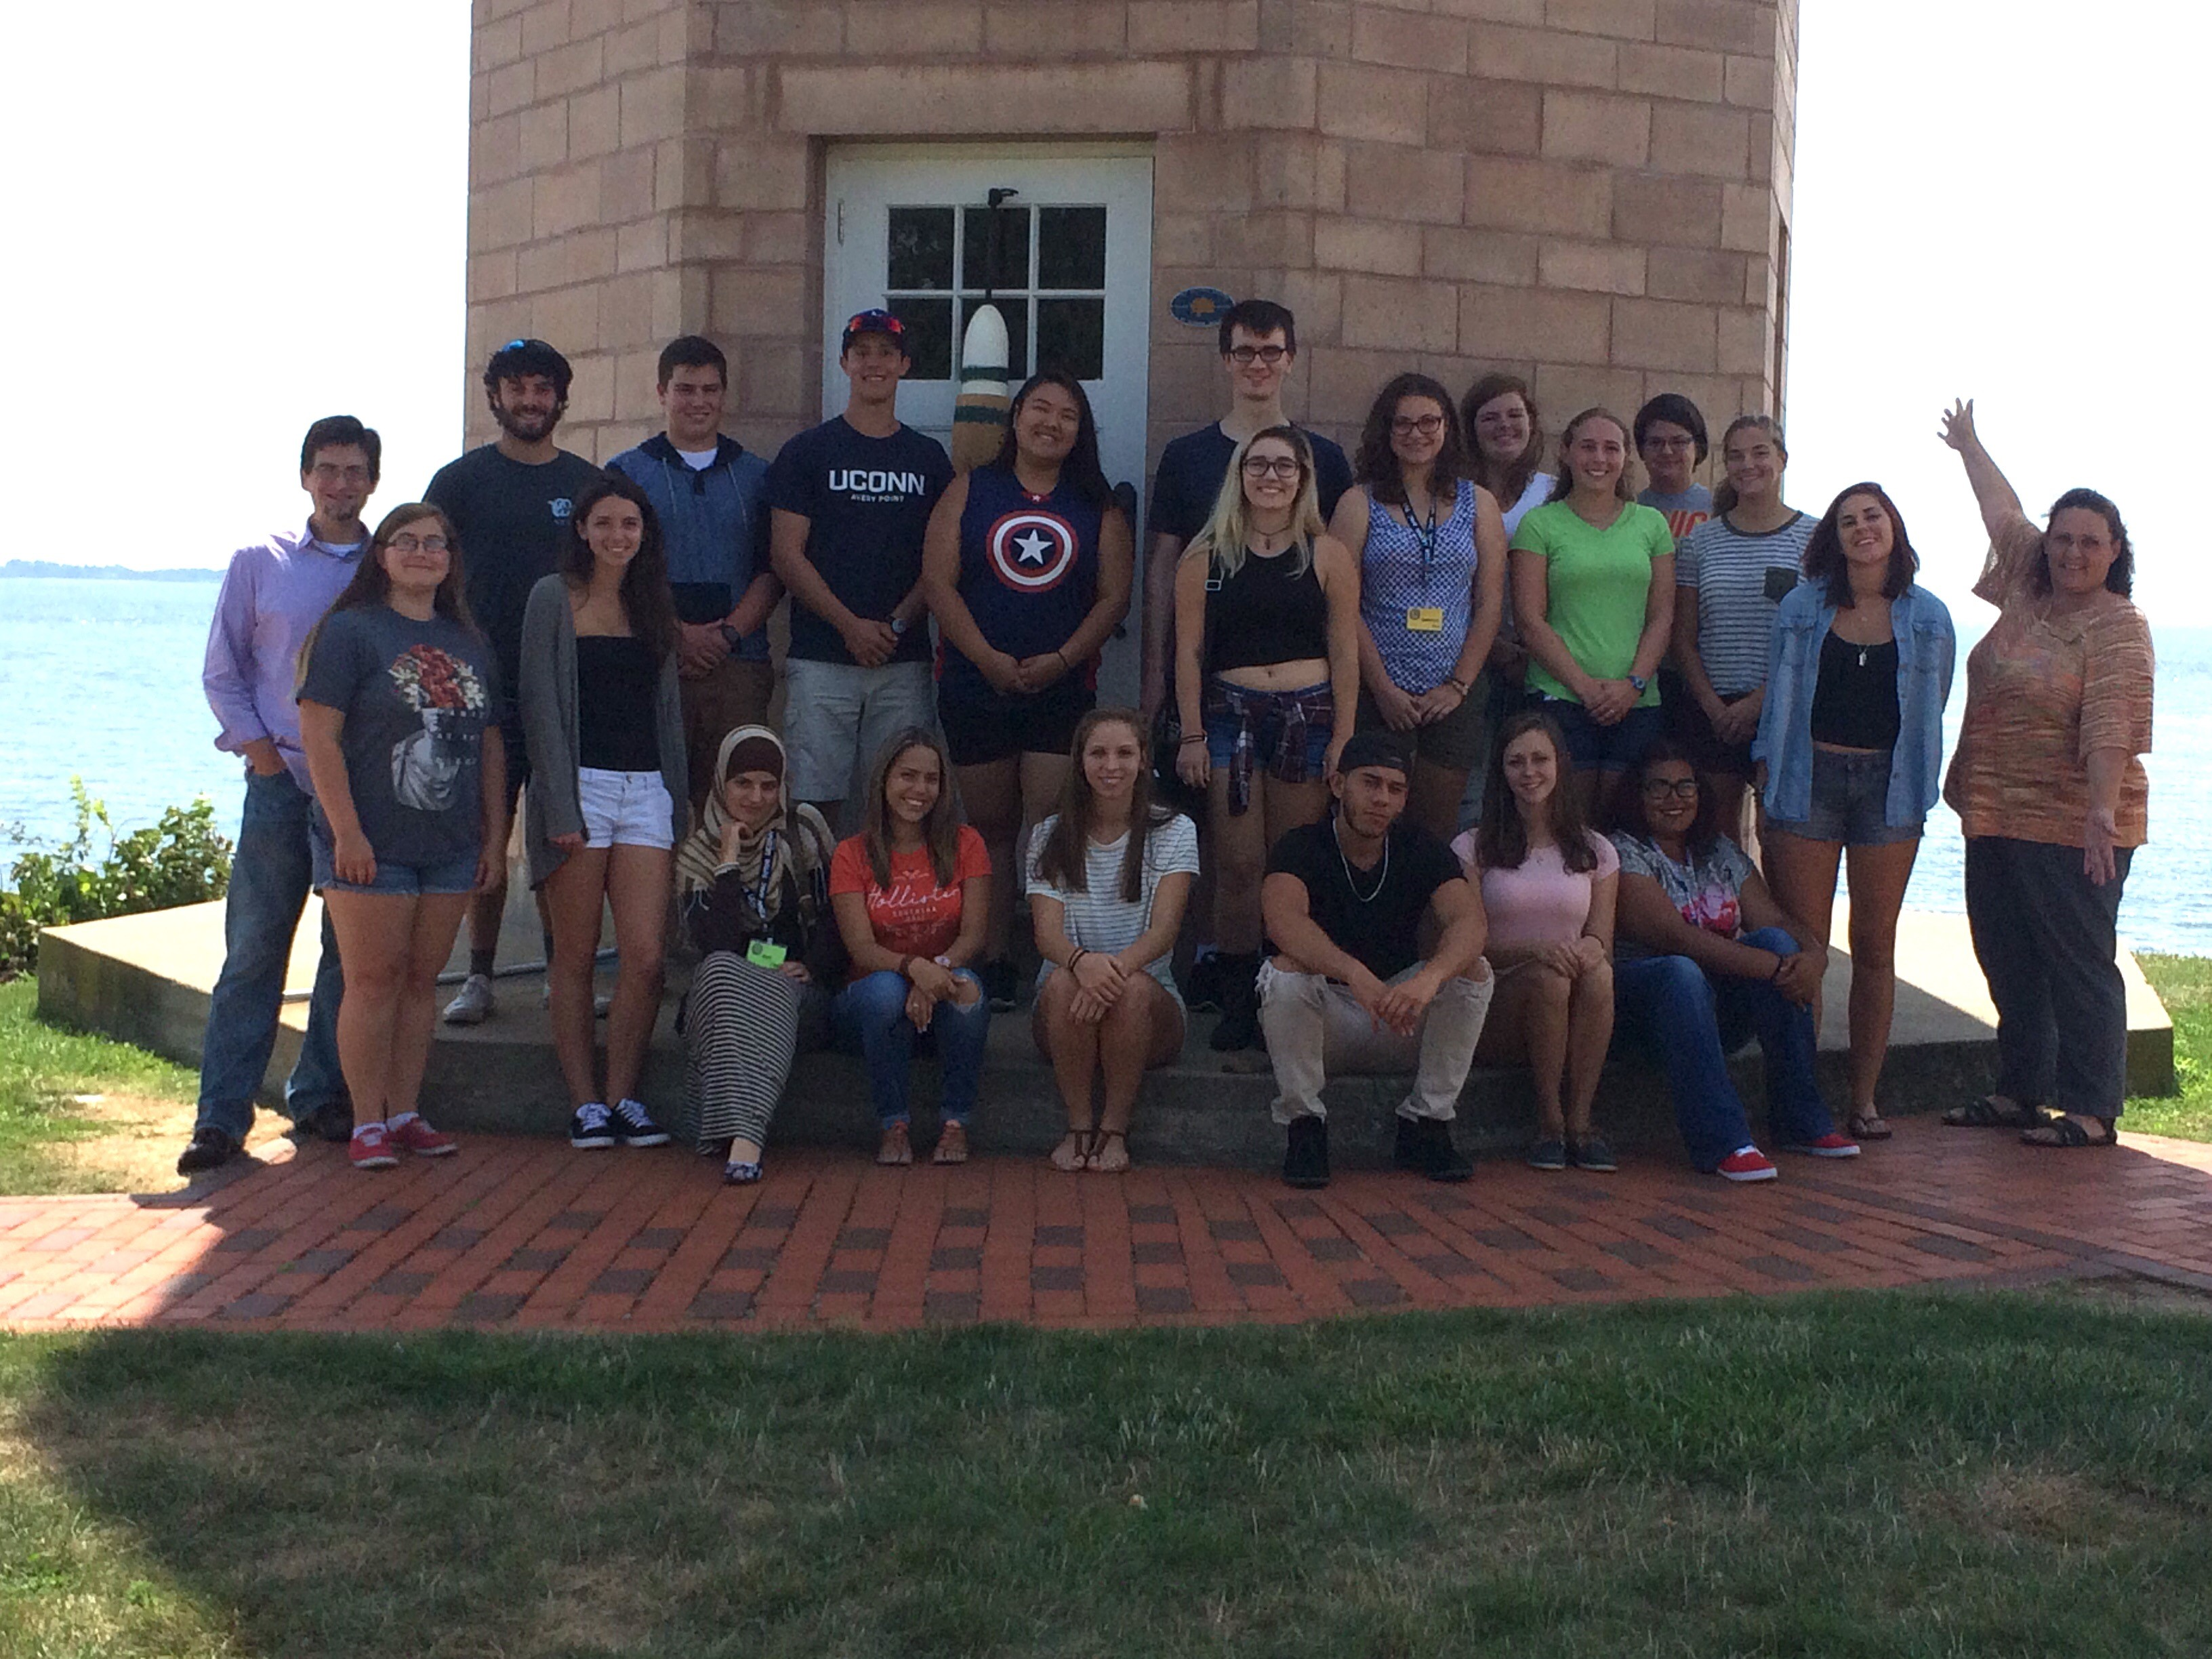 A group picture of the APAC staff in front of the Avery point Lighthouse